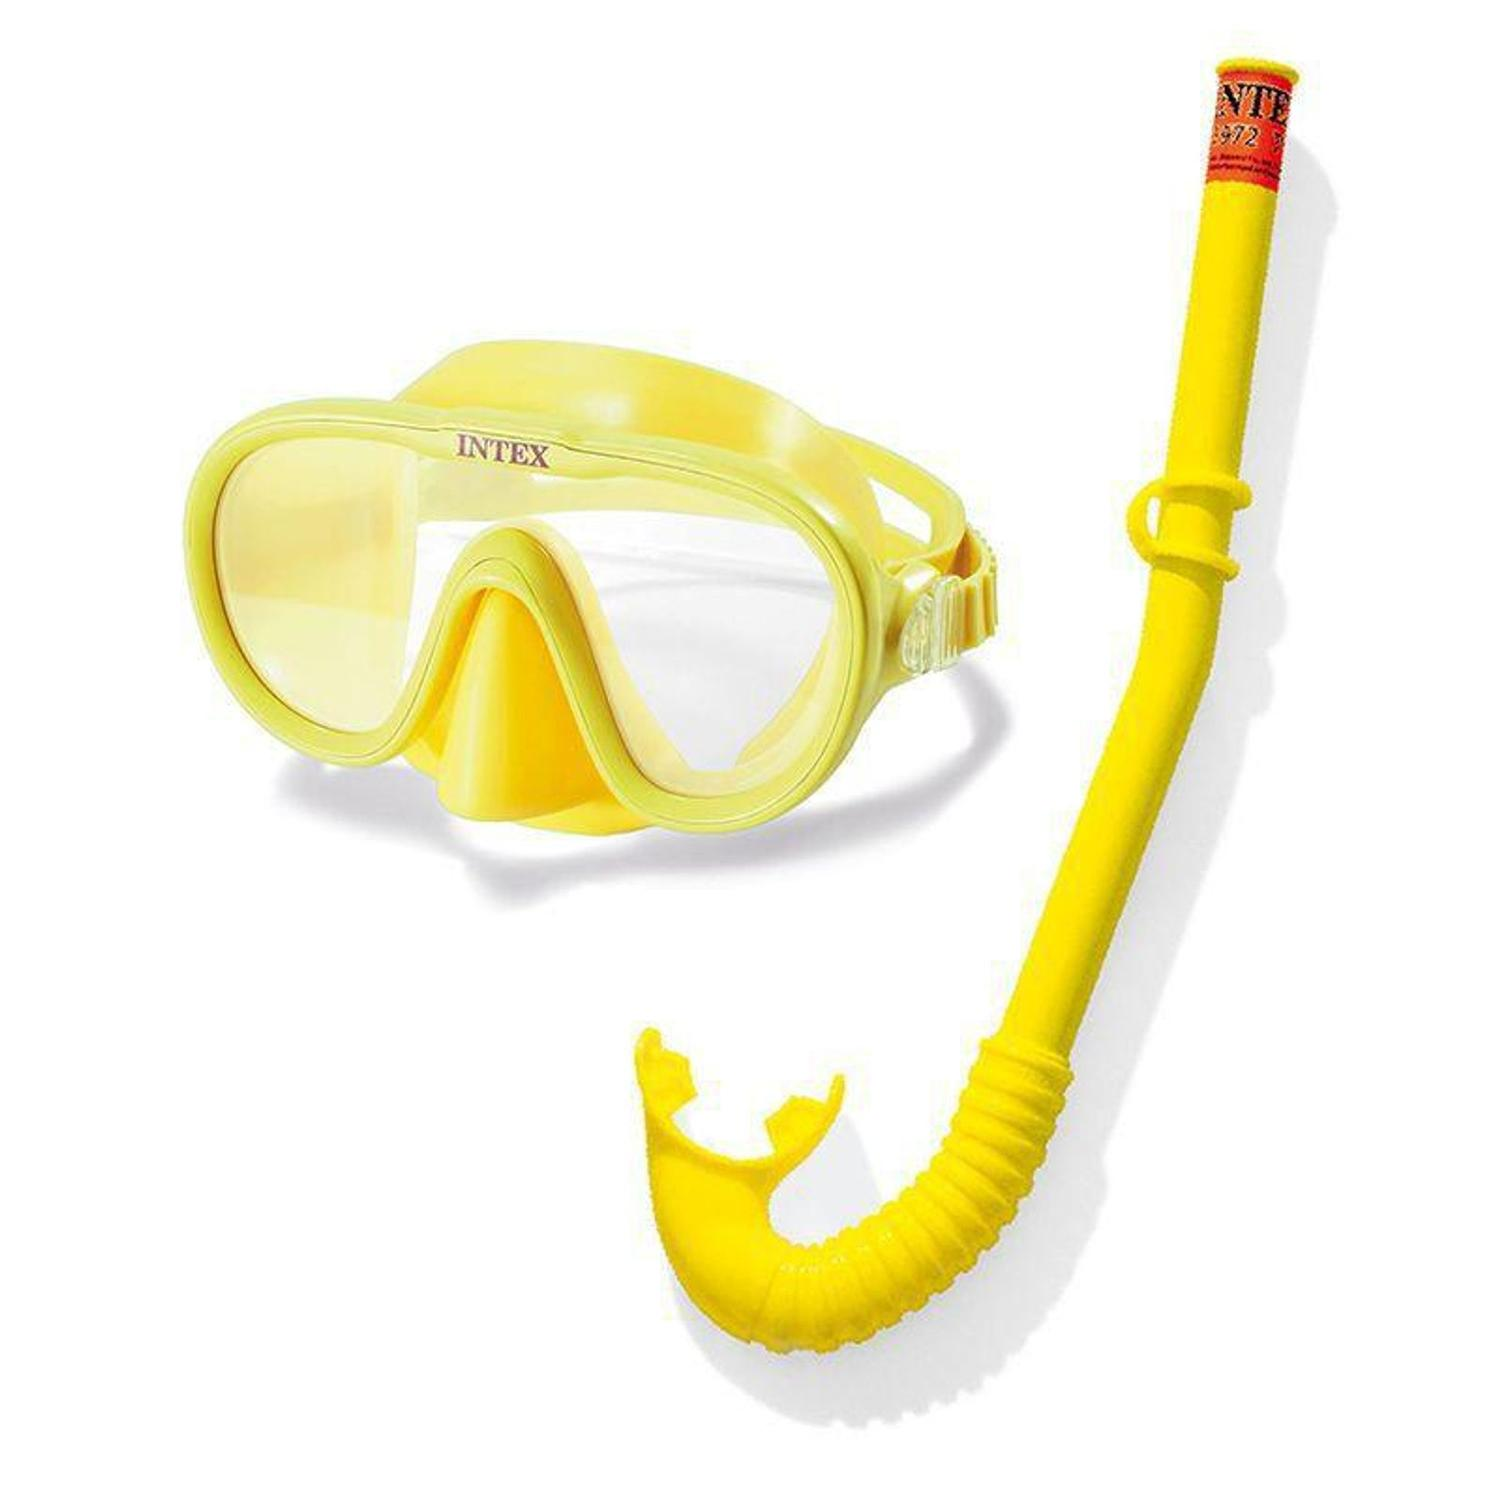 Kit Mergulho Máscara com Snorkel respirador AquaFlow Play Intex 55642